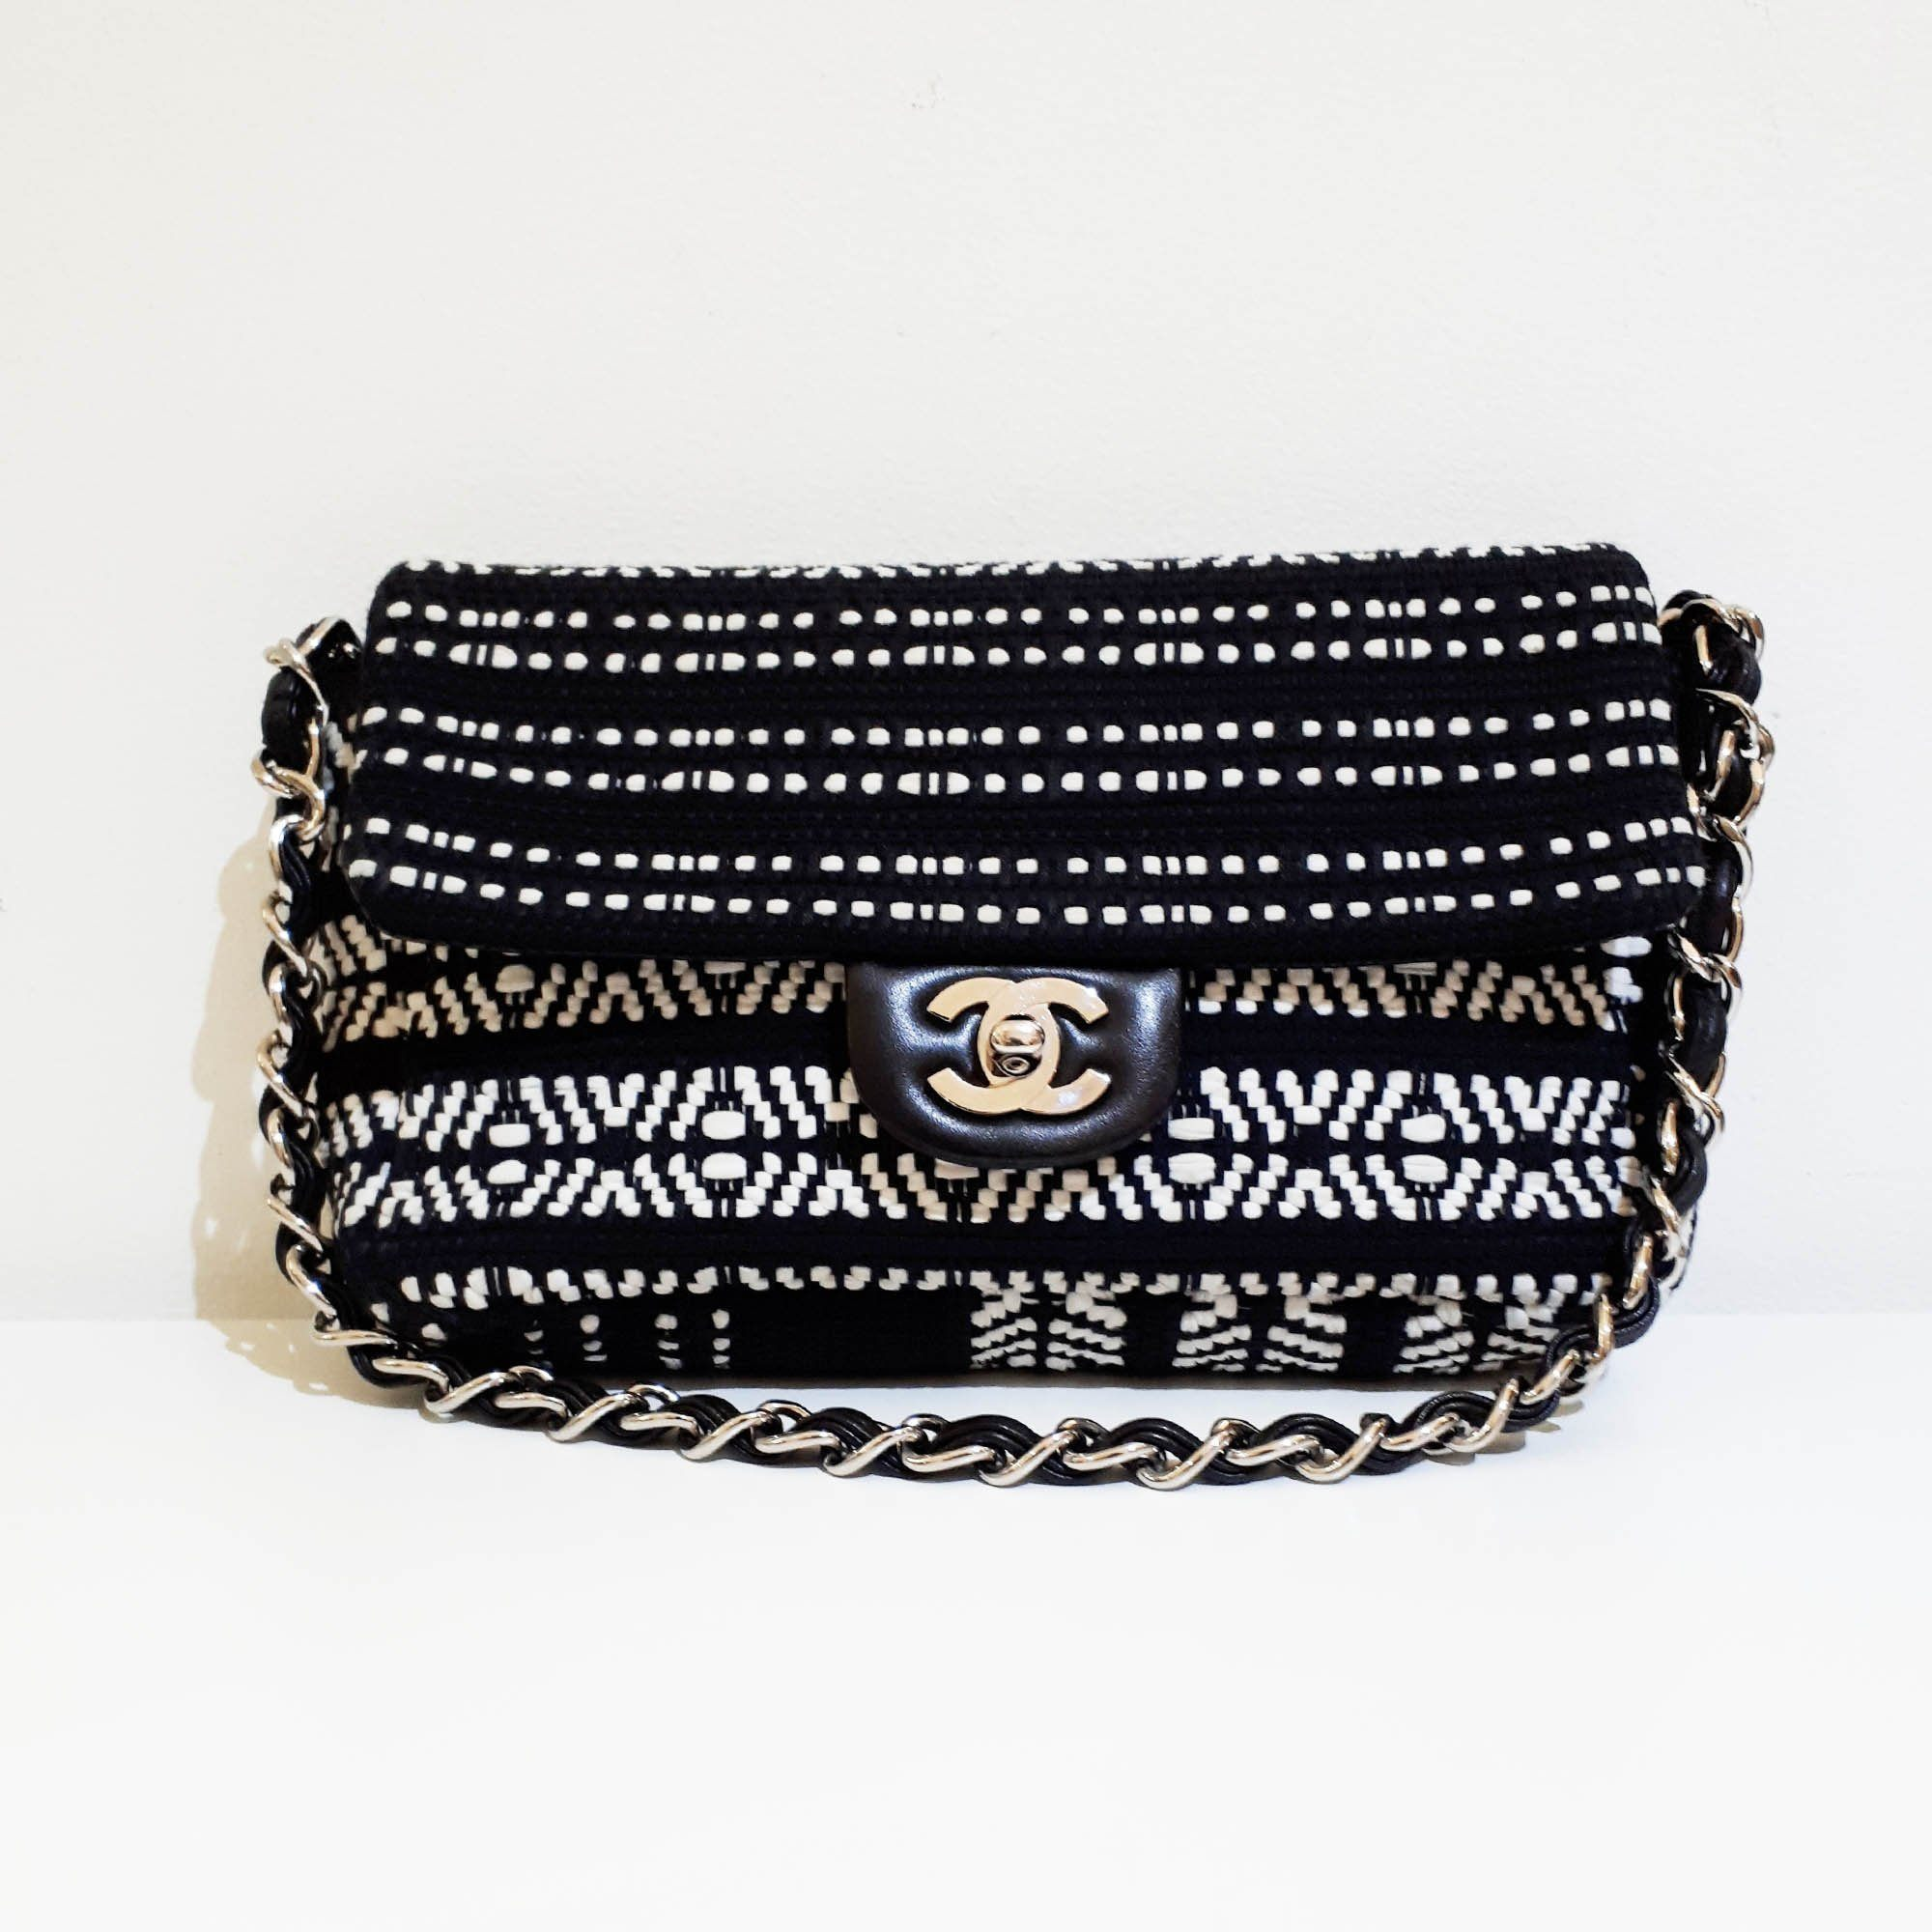 Chanel Fabric Black and White Small Bag